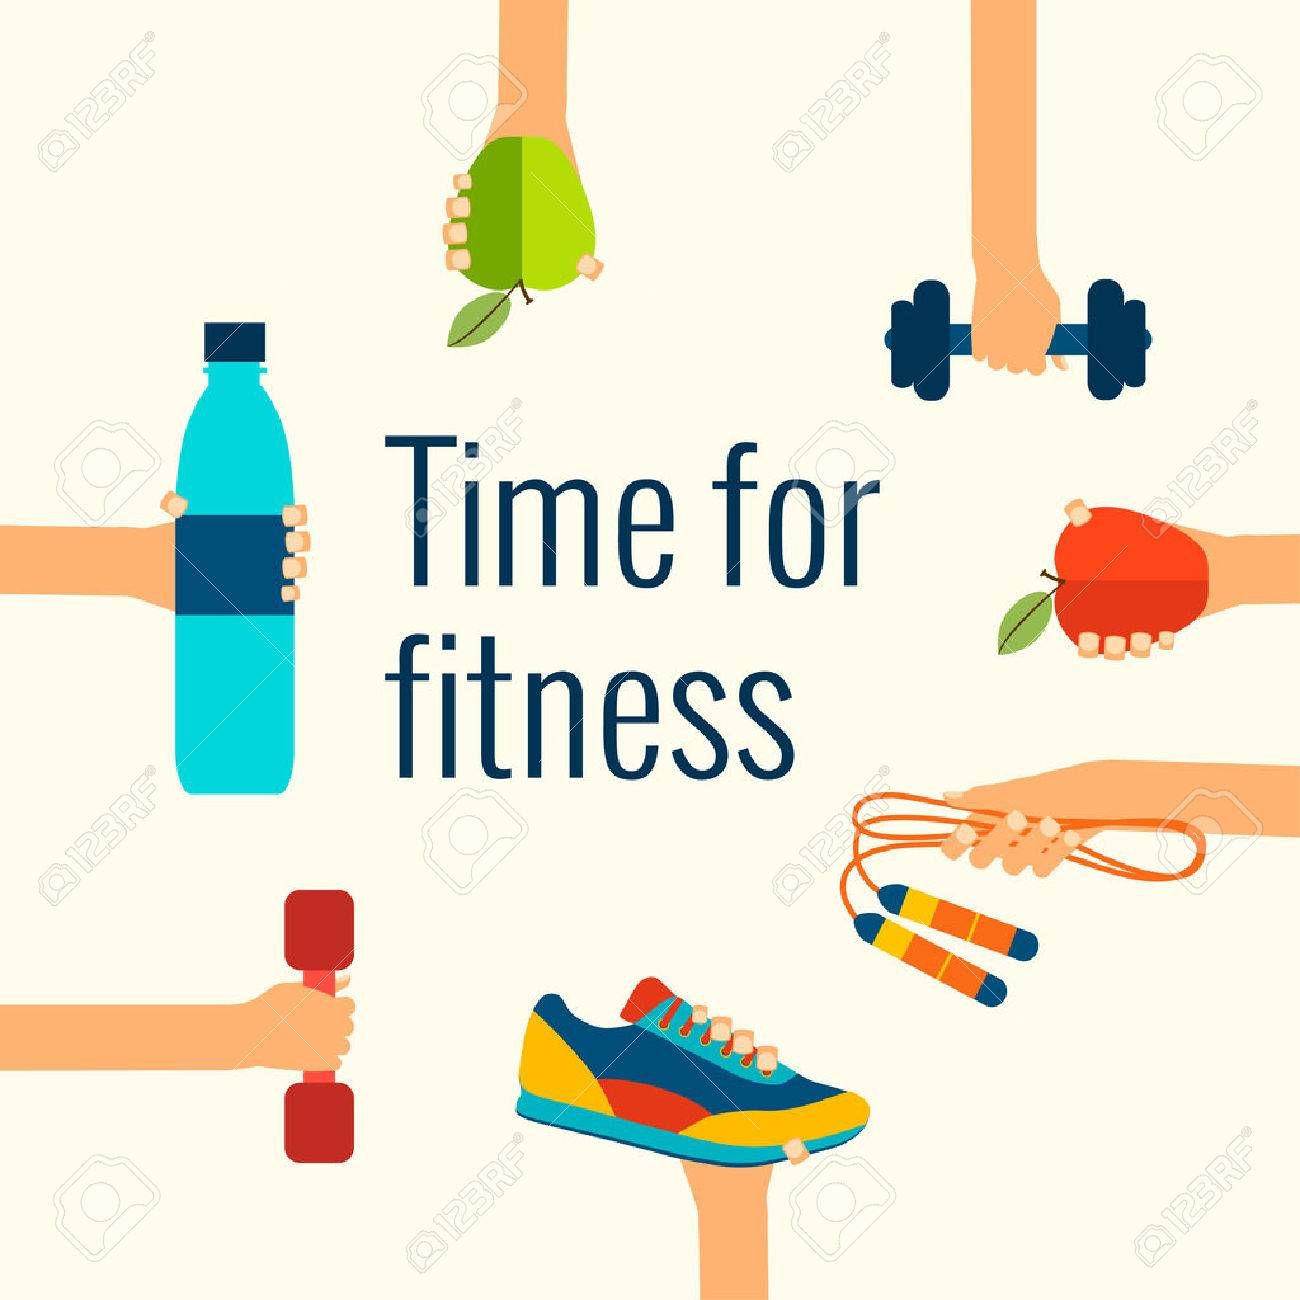 Image Result For Free Clipart Senior Exercise Free Clip Art Senior Fitness Social Media Graphics